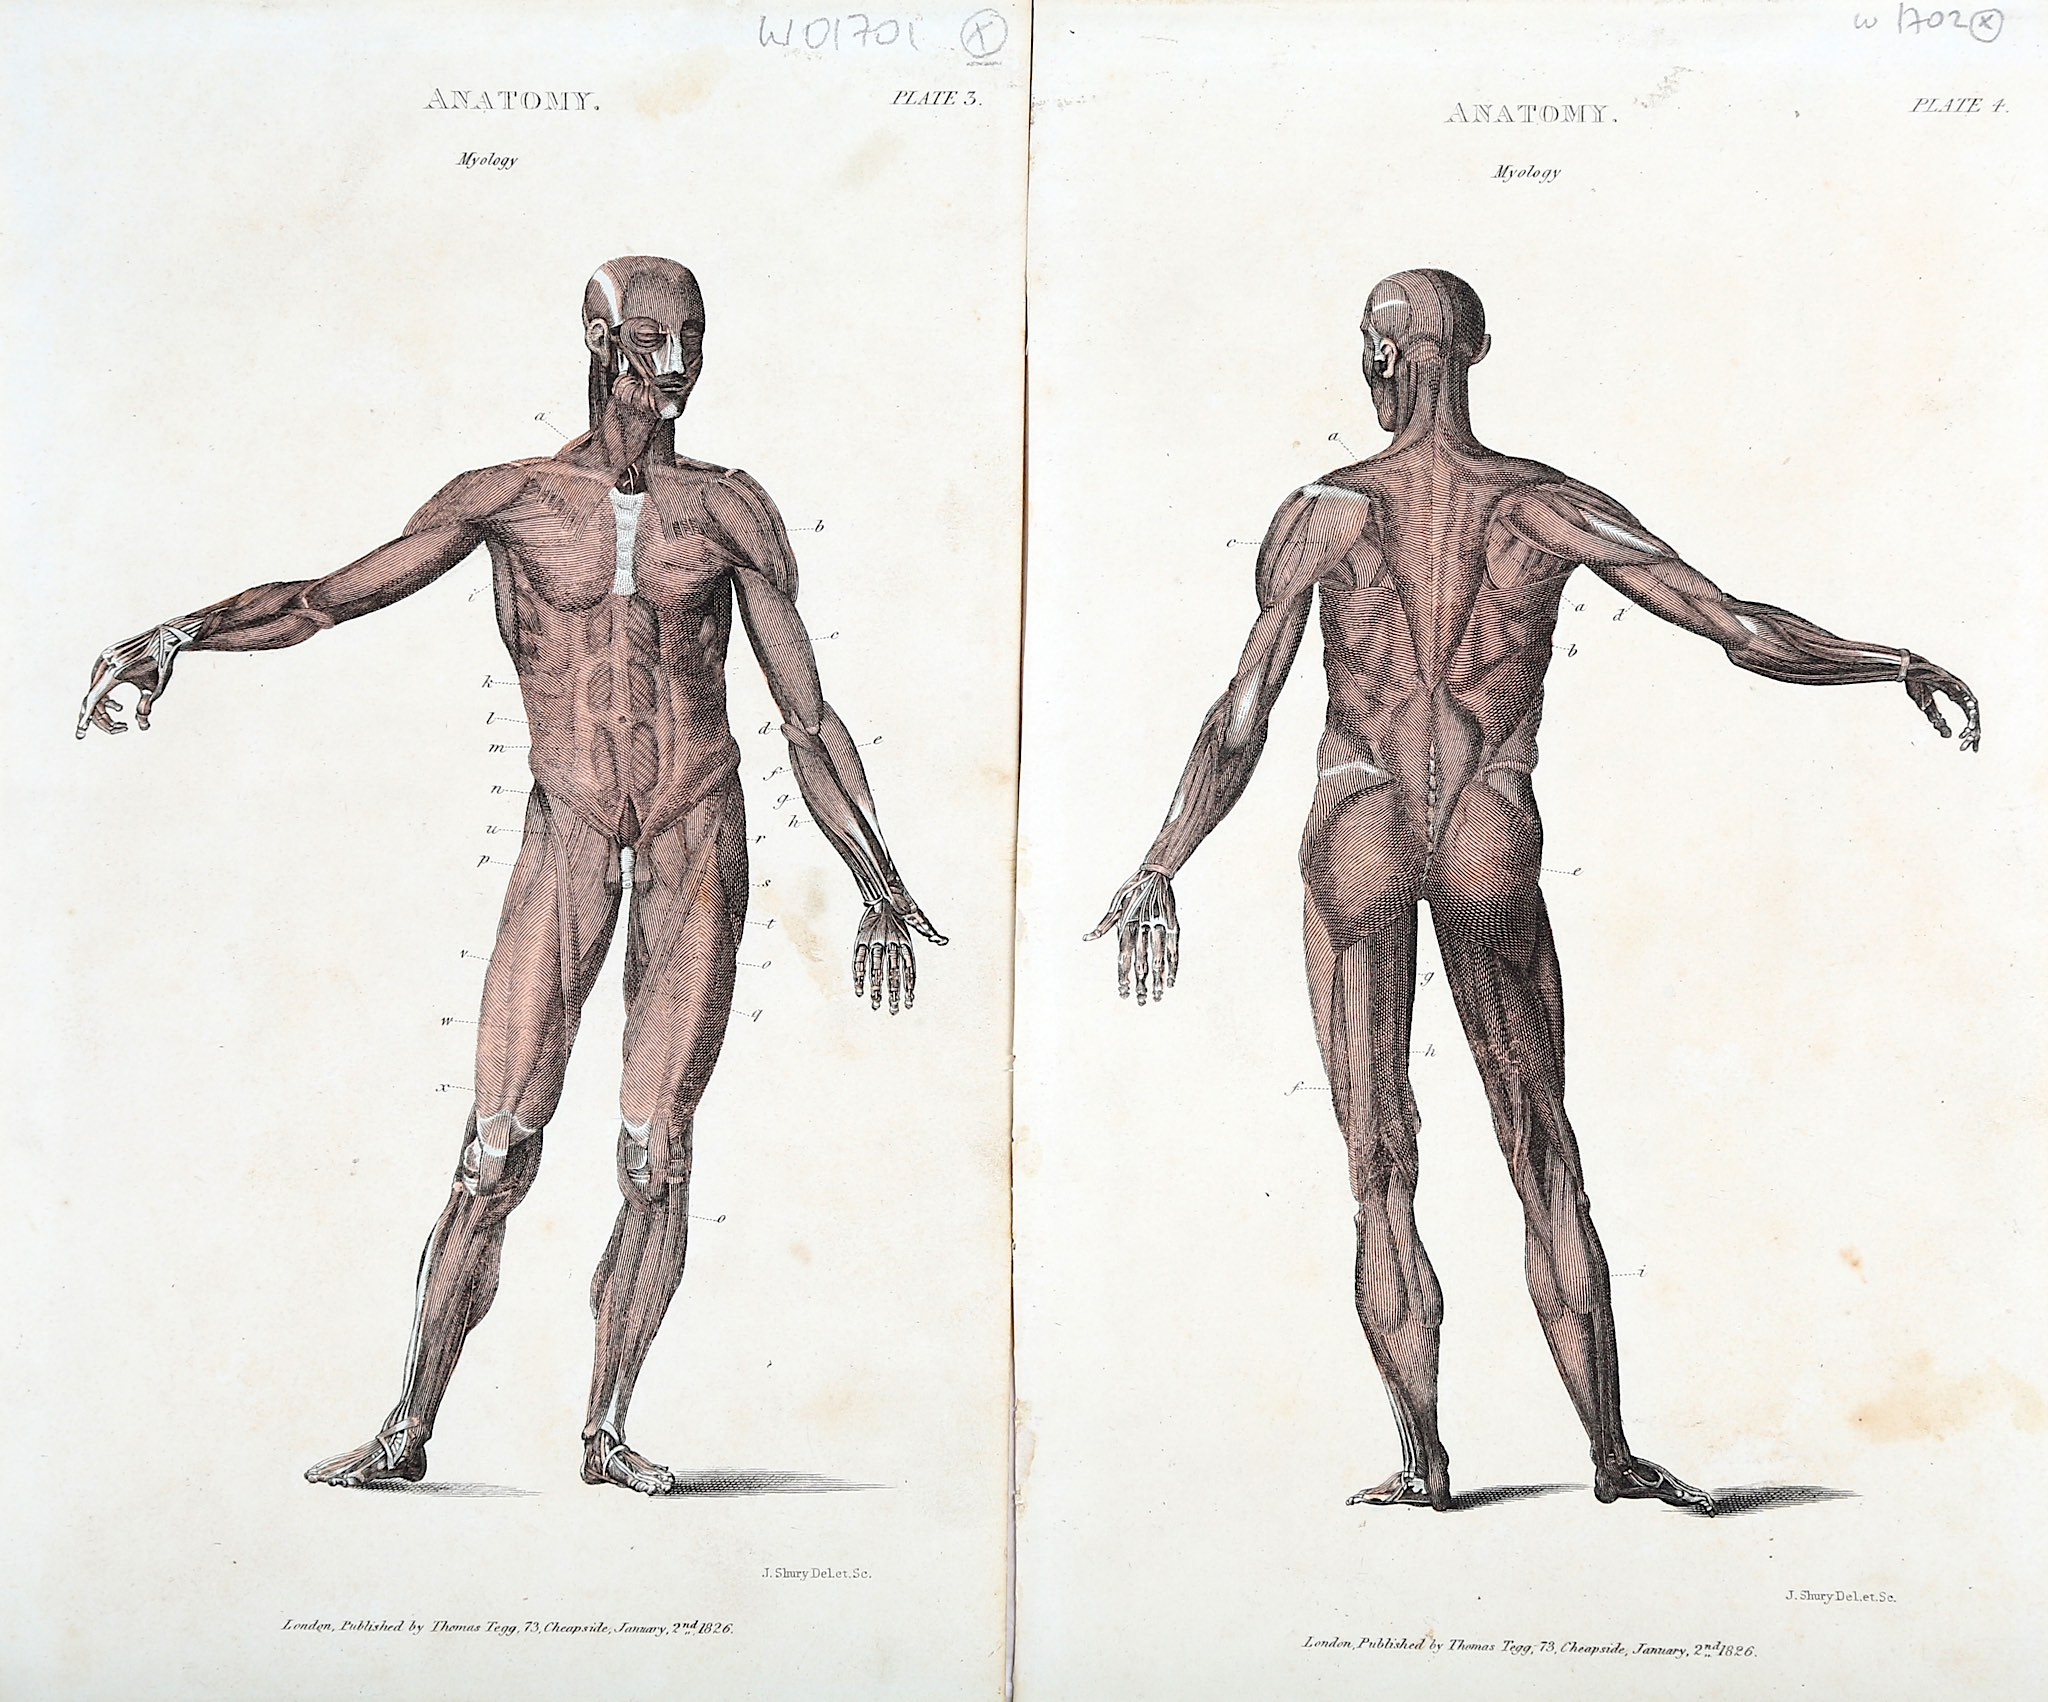 Anatomy A collection of lithographed plates by Langlumé et Angelman ...